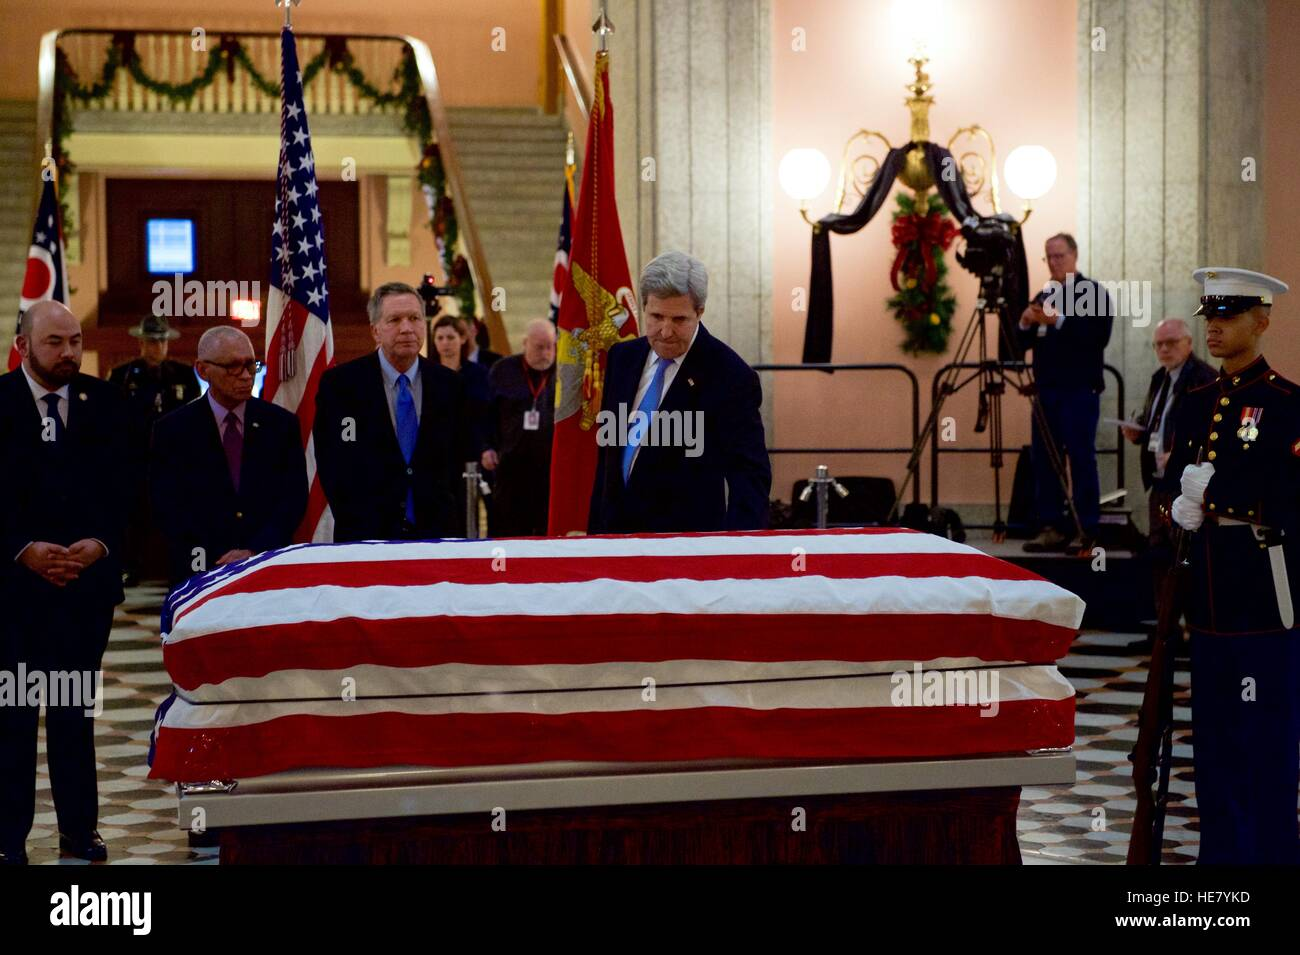 U.S. Secretary of State John Kerry touches the casket of astronaut and former Senator John Glenn as Speaker of the - Stock Image